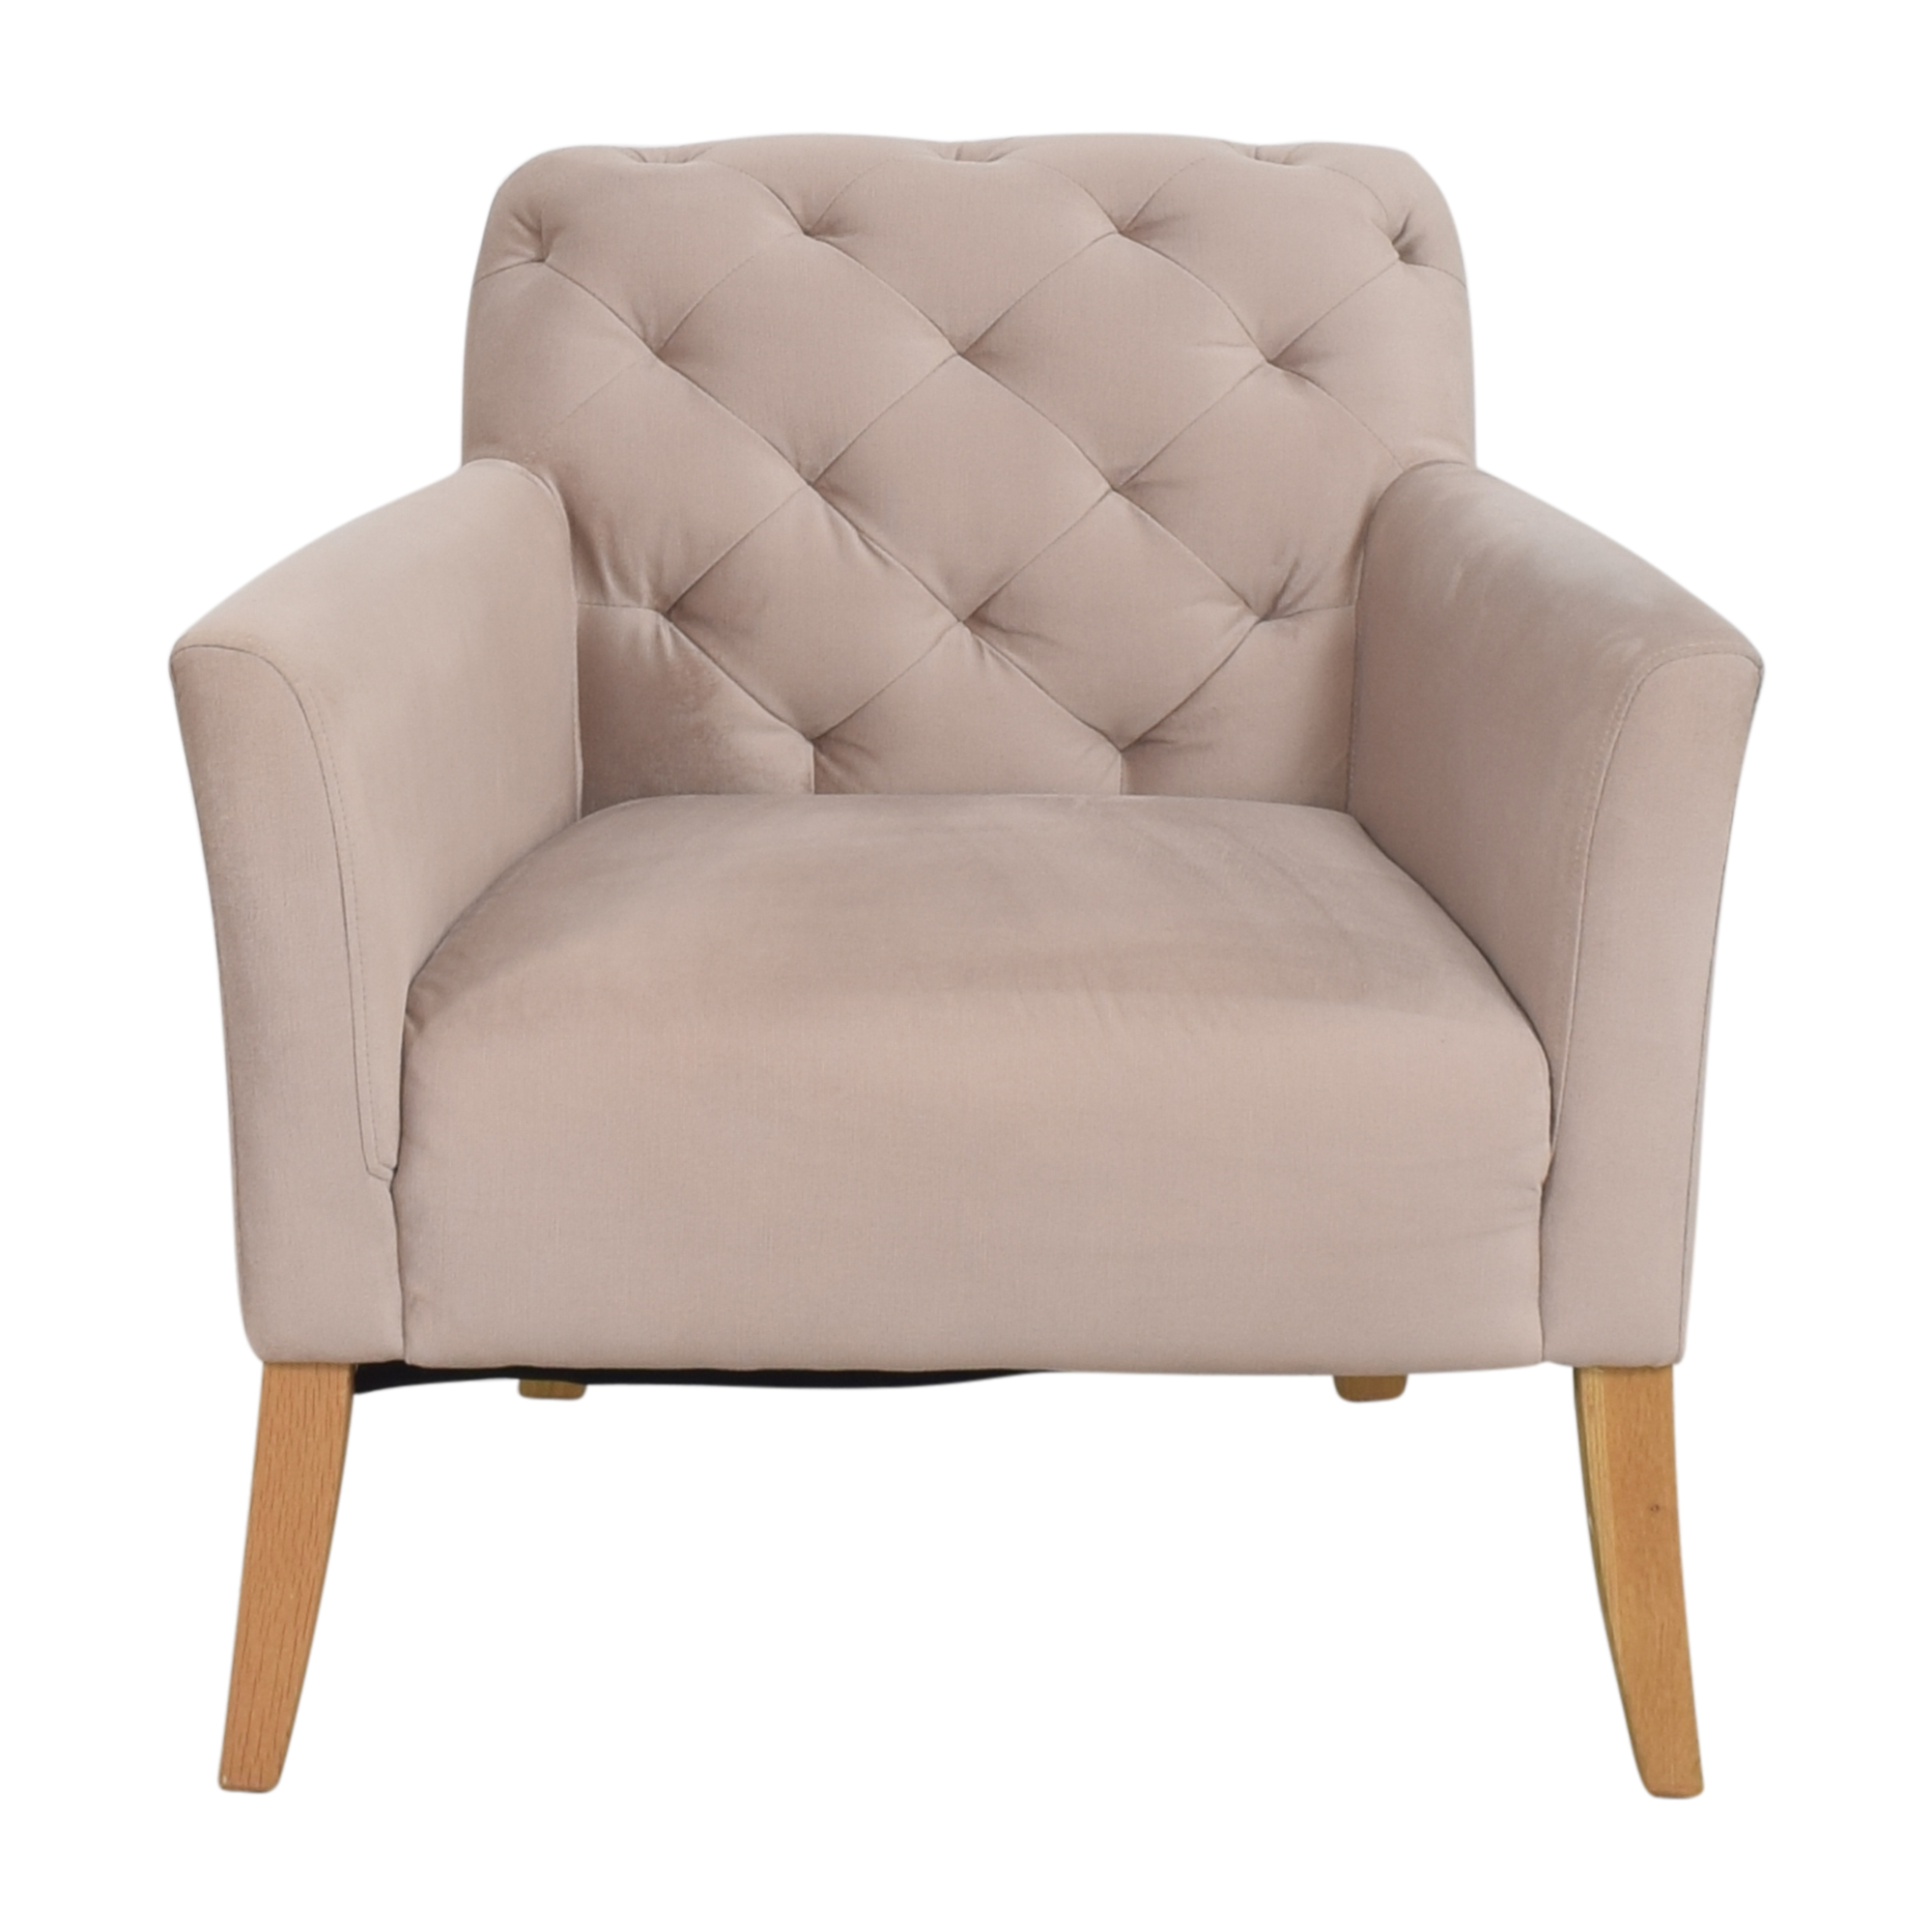 shop West Elm Elton Tufted Arm Chair West Elm Chairs